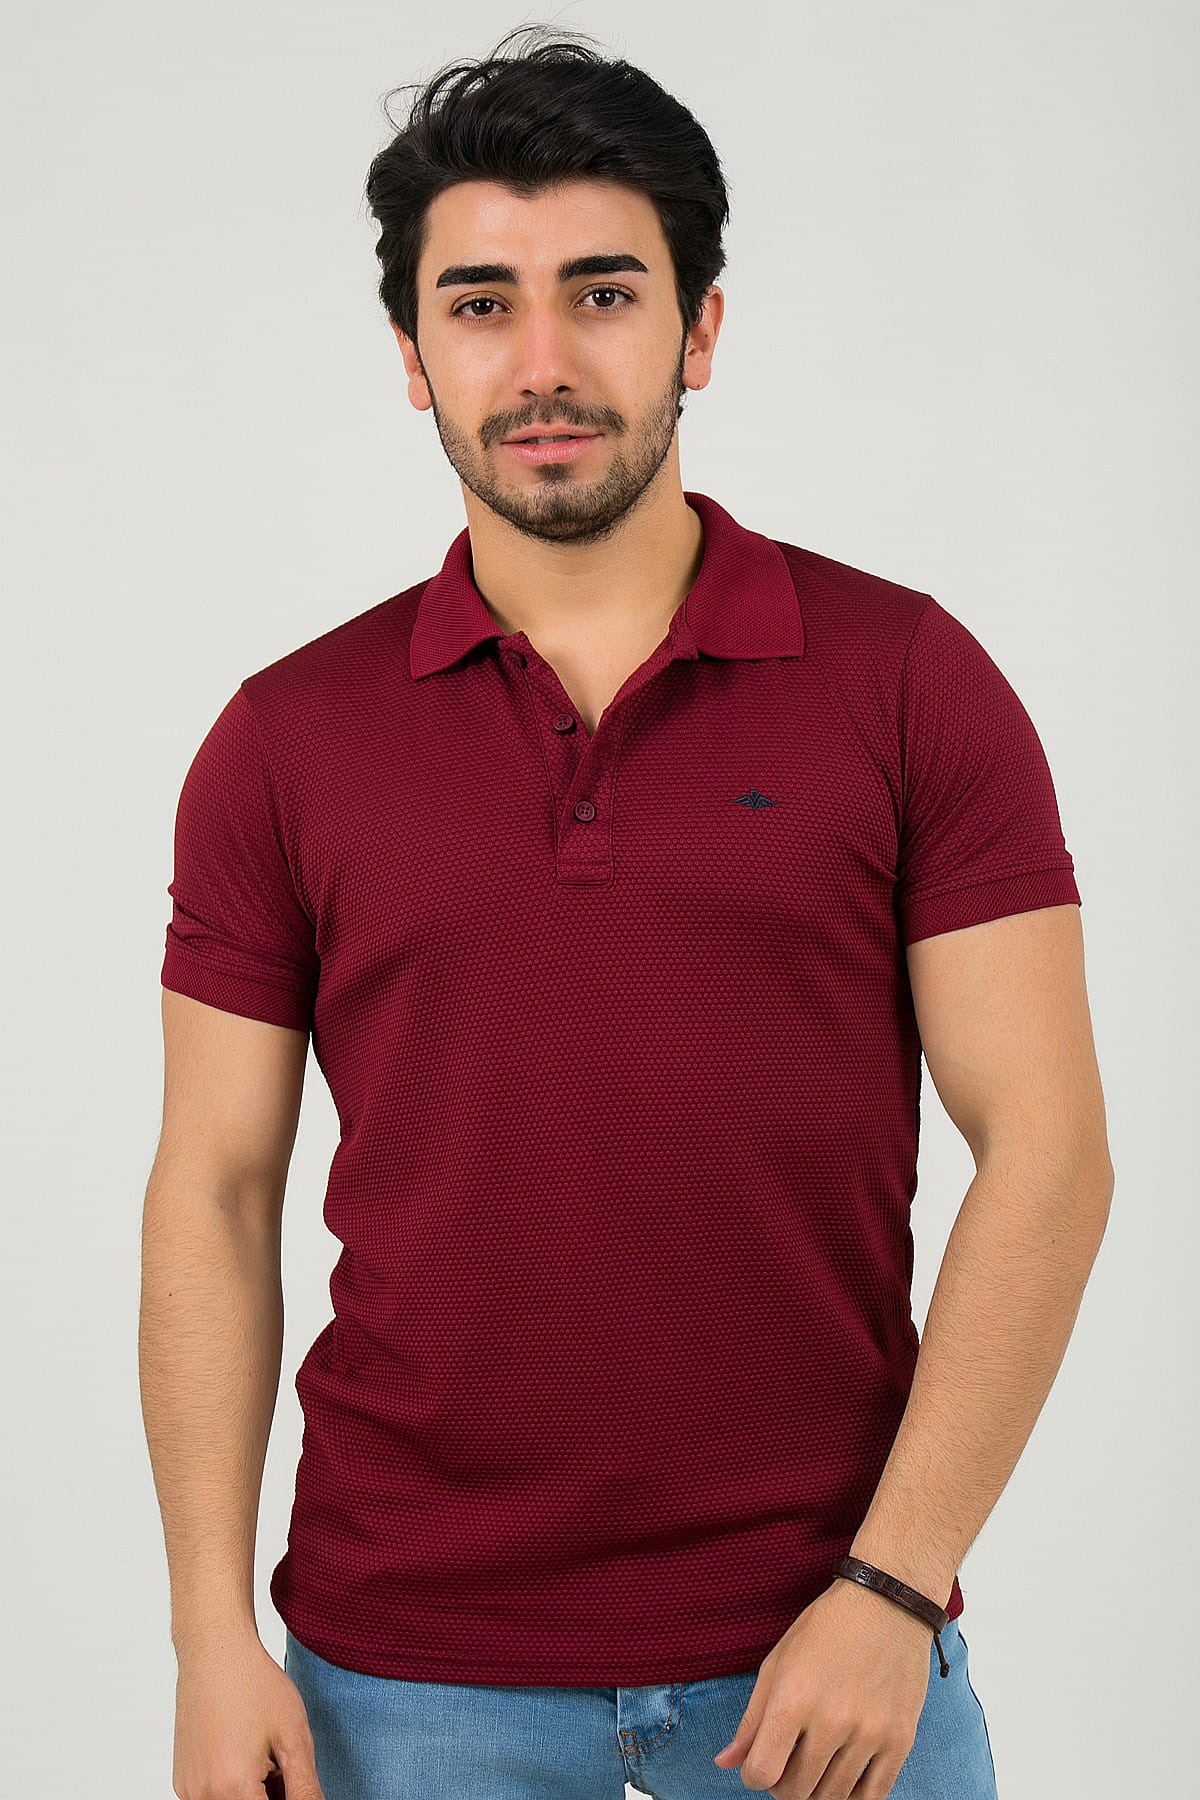 oksit-hilti-229001-extra-slim-fit-polo-yaka-6032775-c-bordo